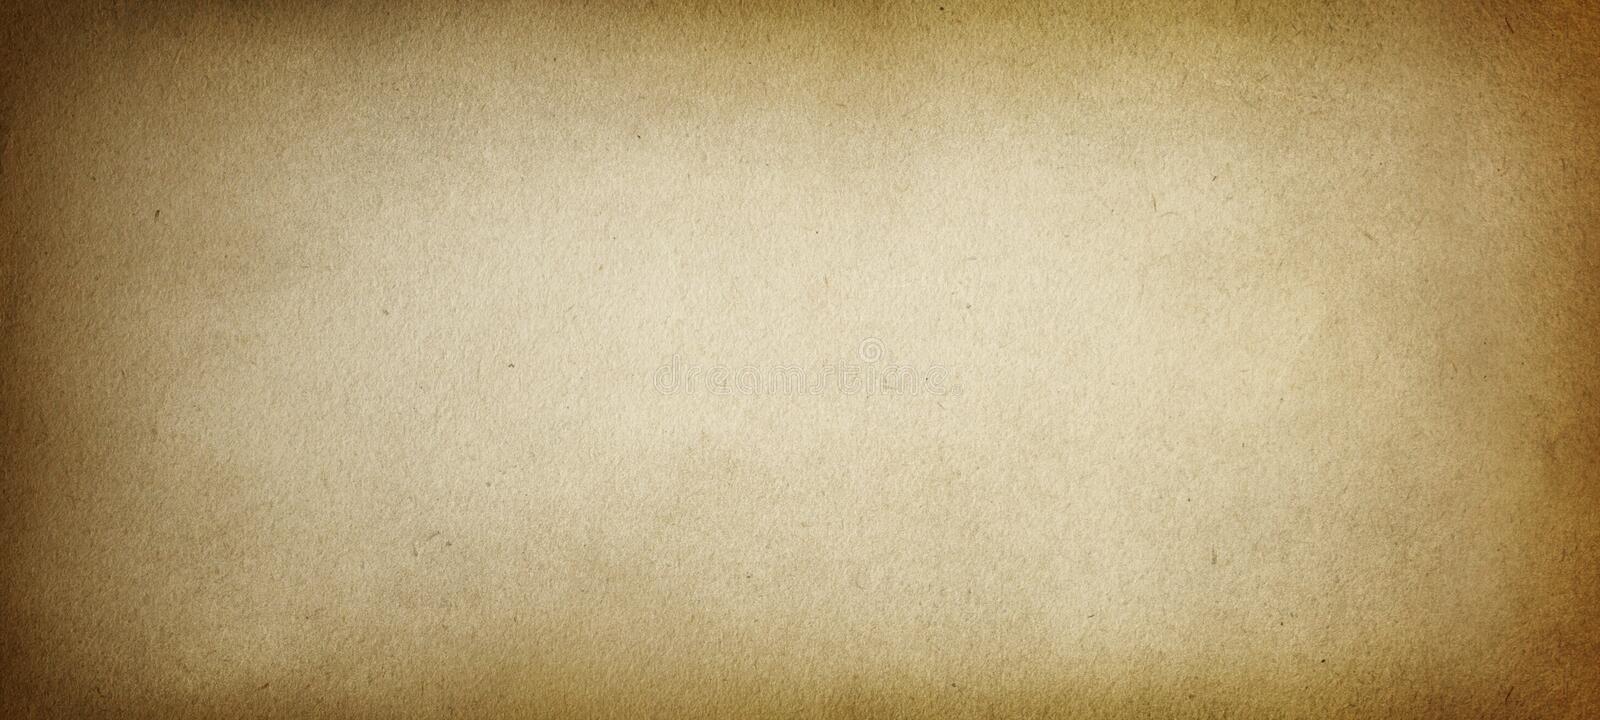 Old brown paper, paper texture, vintage, retro, rough, antique, blank, space for text, beige, grunge background 皇族释放例证